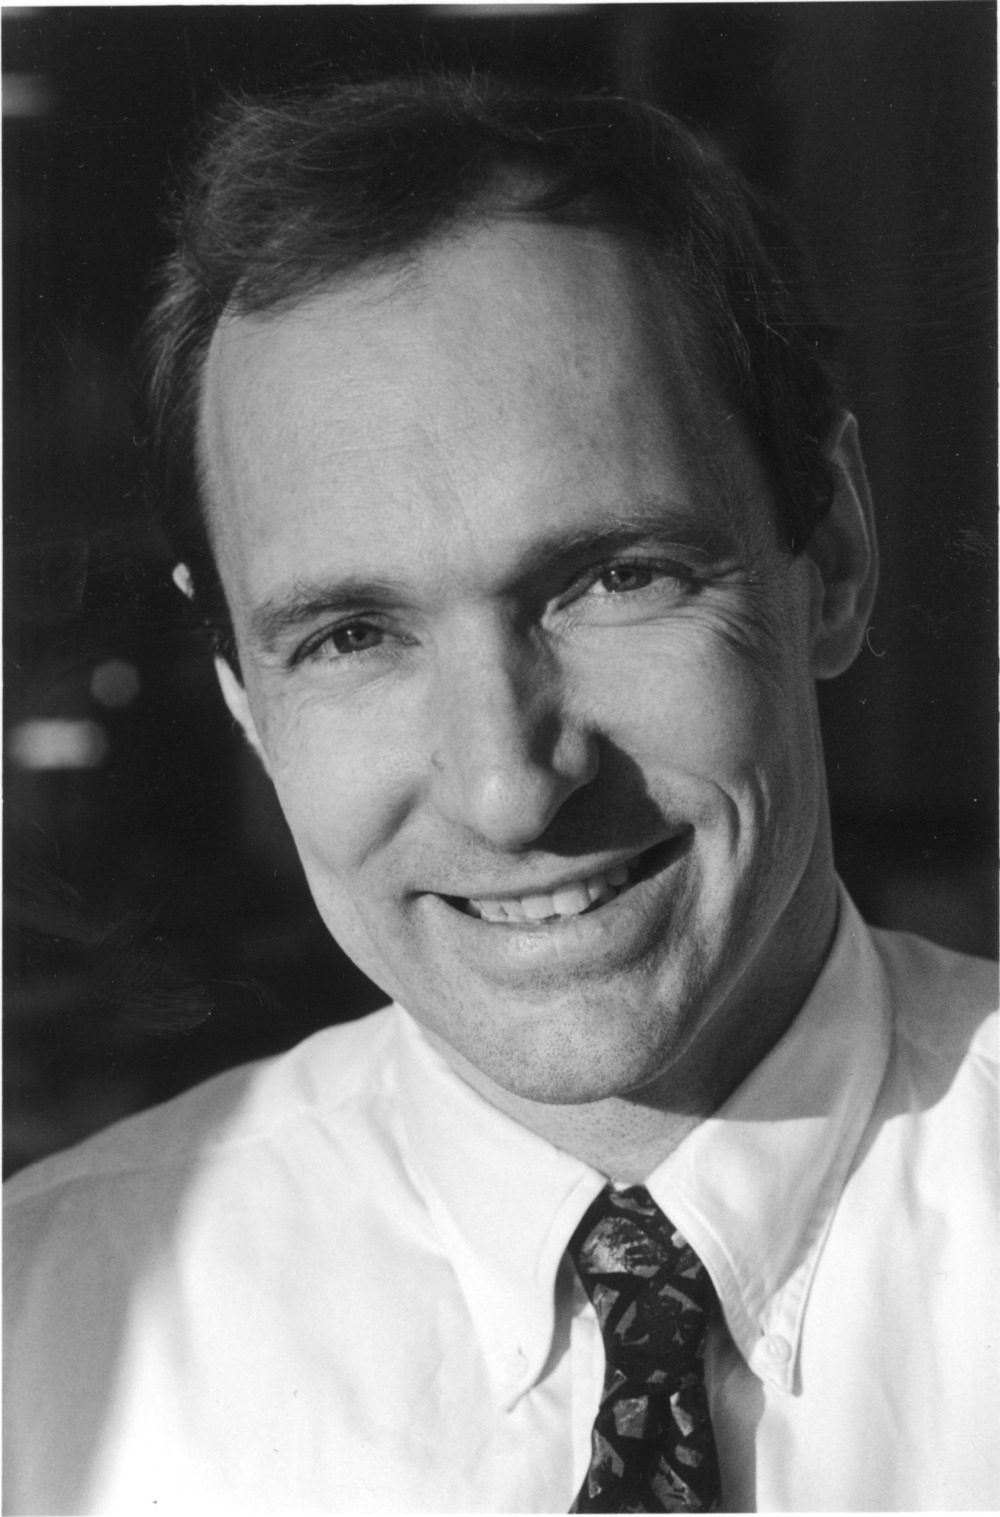 Sir Timothy John Berners-Lee Creator of the World Wide Web